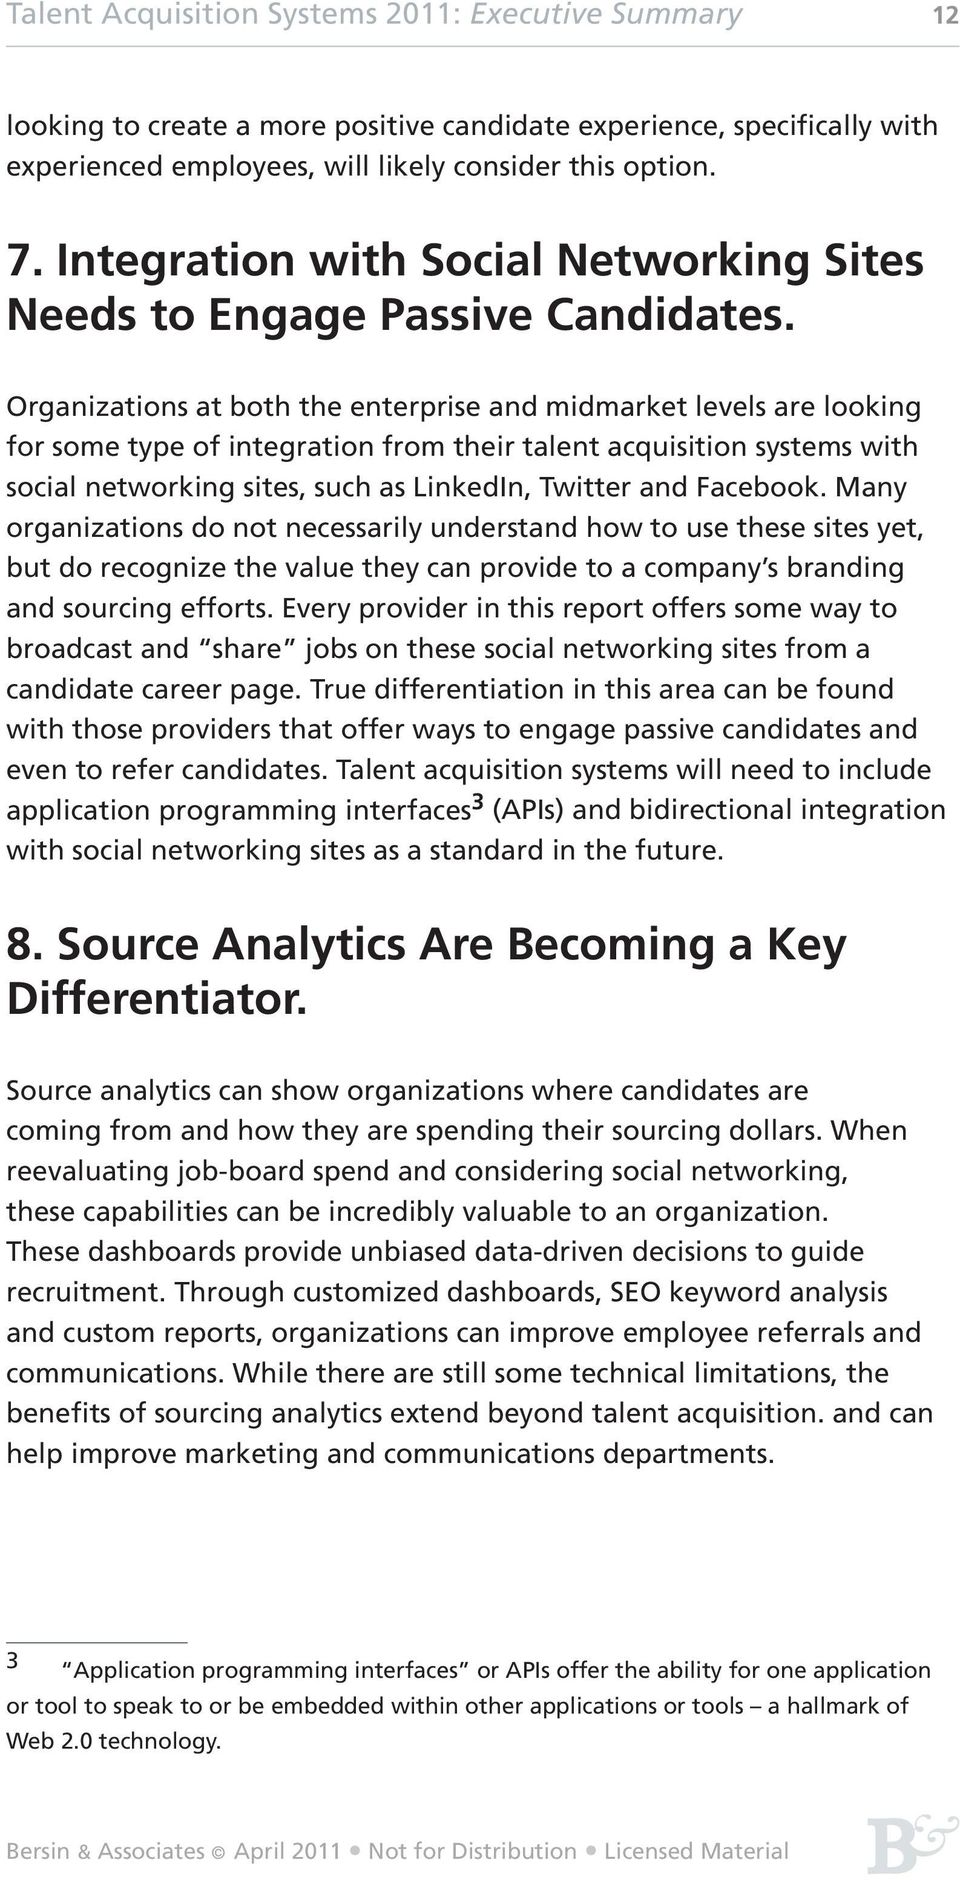 Organizations at both the enterprise and midmarket levels are looking for some type of integration from their talent acquisition systems with social networking sites, such as LinkedIn, Twitter and